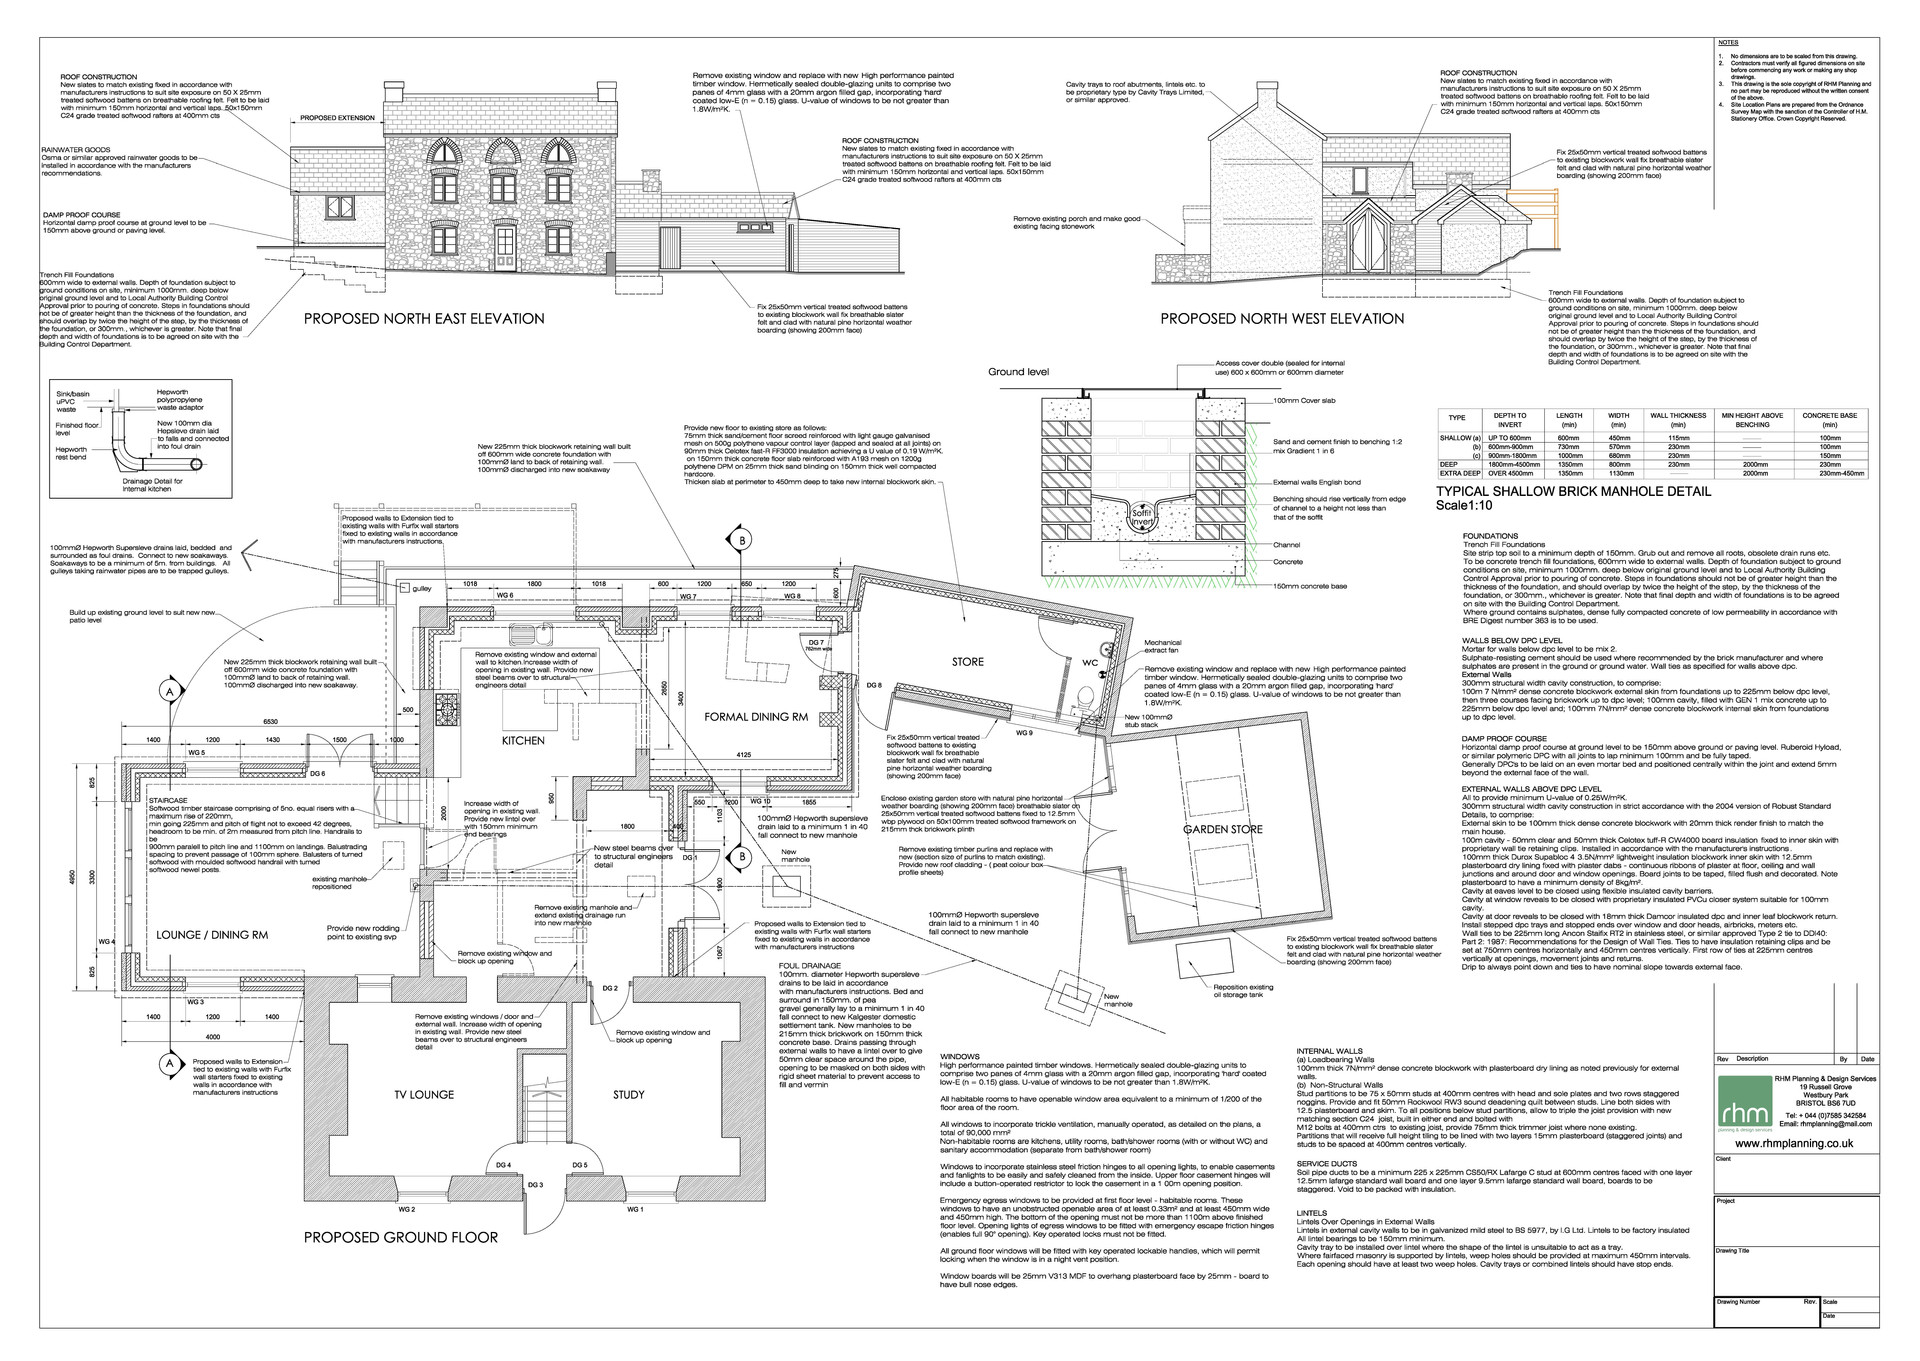 BUILDING REGULATION DRAWING [Example 001